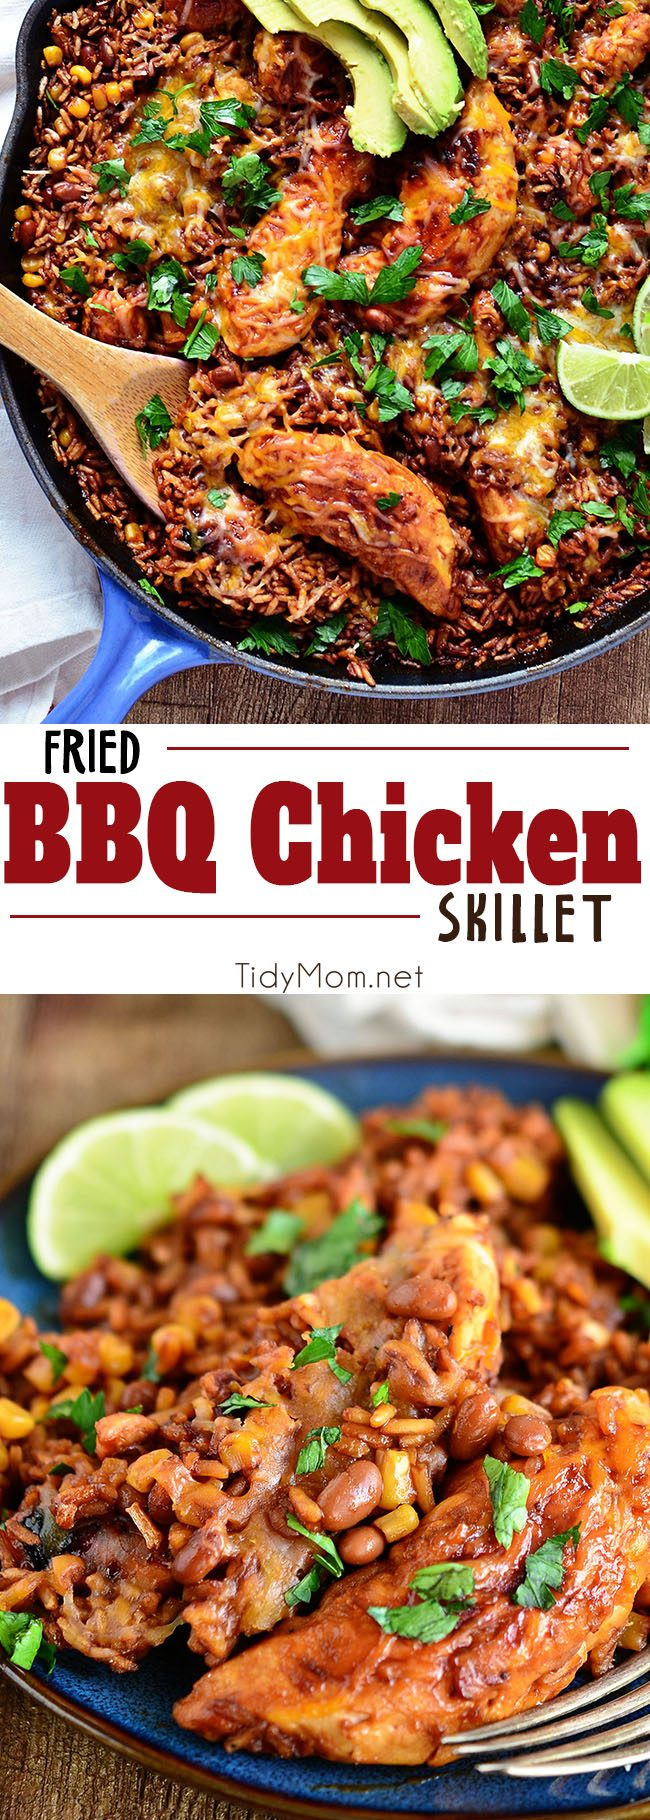 Fried BBQ Chicken Skillet dinner blends barbecue sauce, chicken, baked beans, corn and rice to create a satisfying meal that's ready in 30 minutes. Set with a cozy dinner table and playlist and it's the perfect, weeknight recipe for families. Find the recipe at Tidymom.net